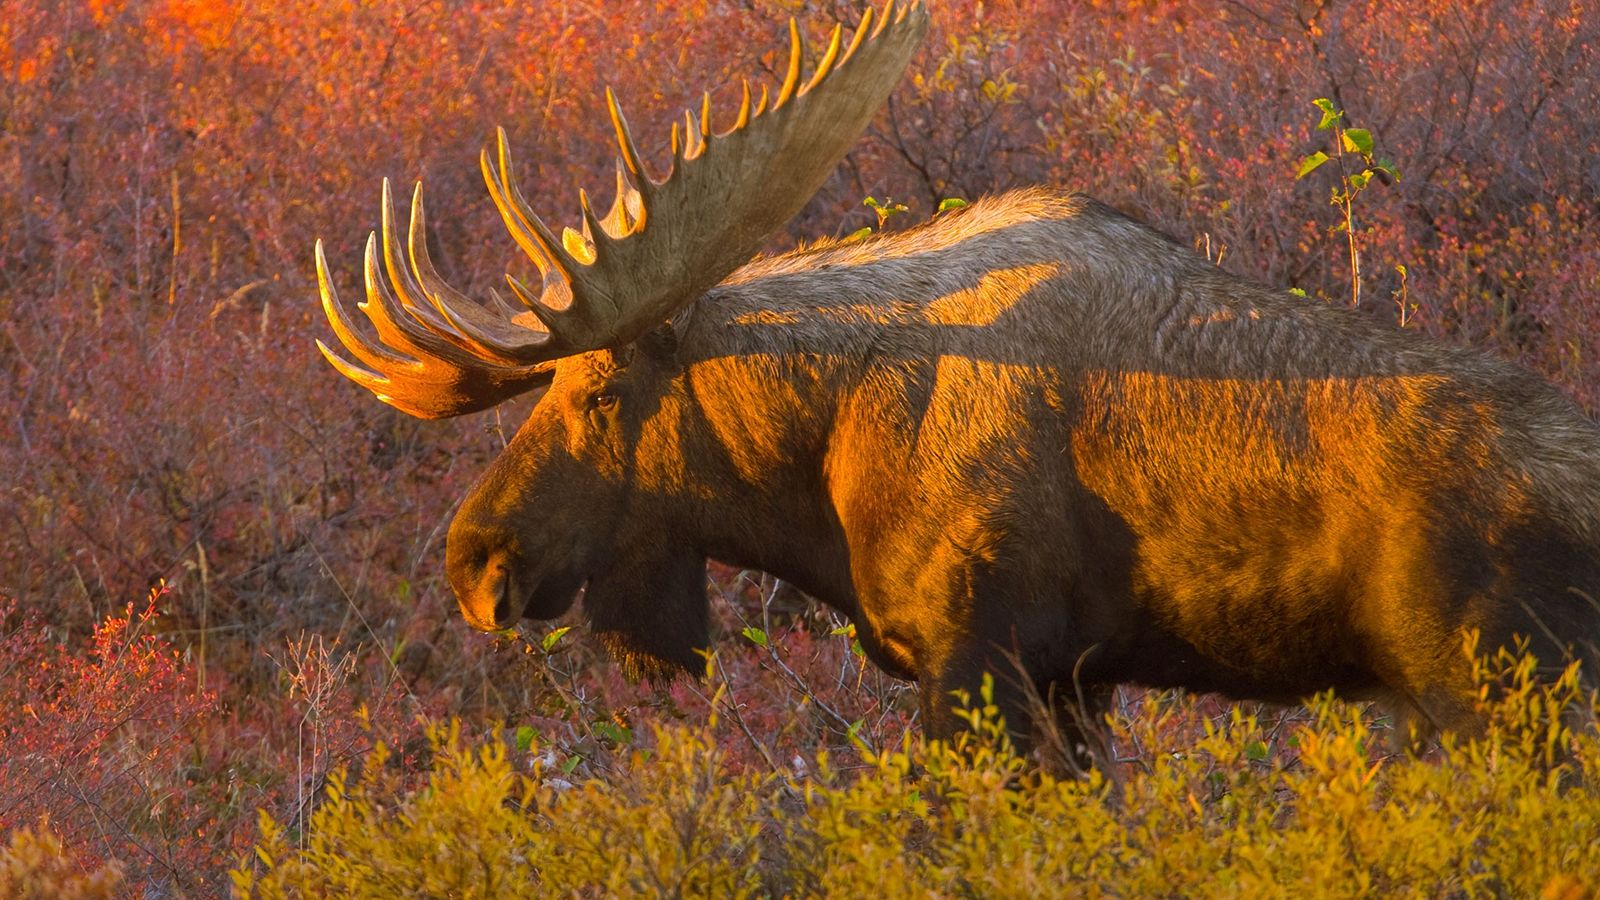 A male moose emerges from the bushes during fall rutting season on the Alaska tundra.